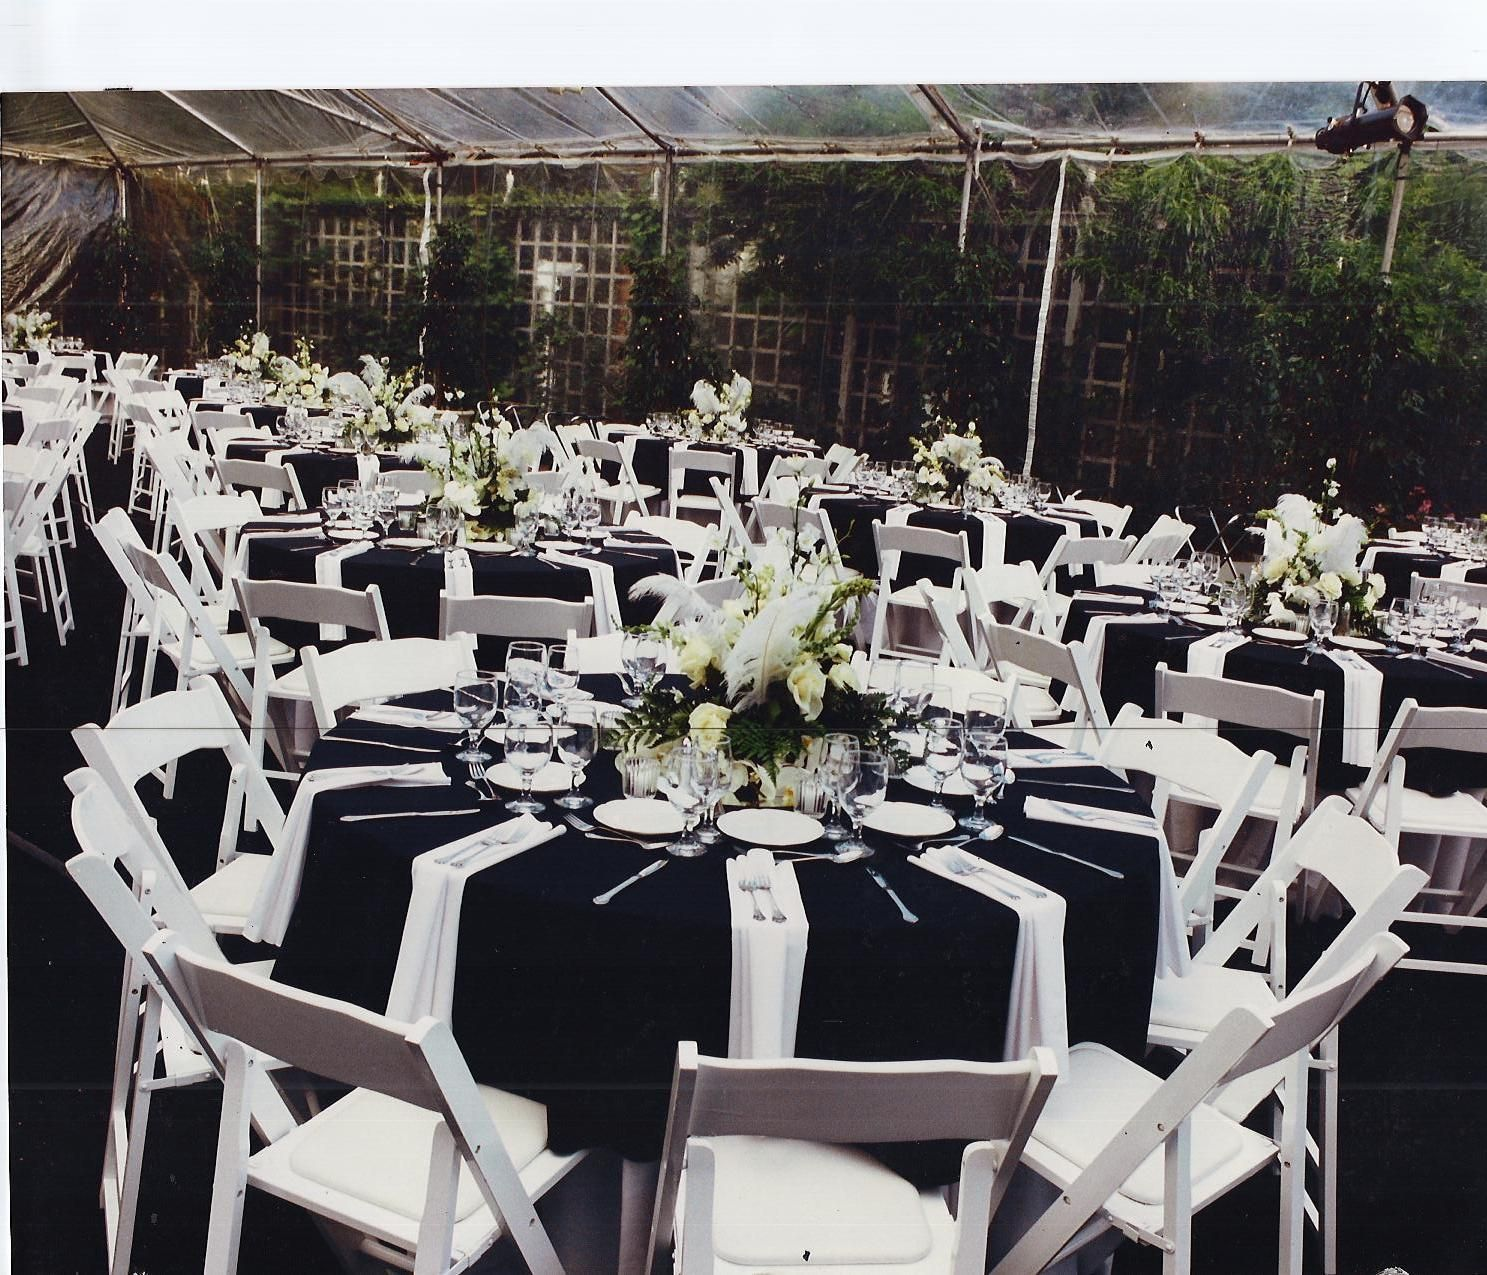 All Black Linens White Chairs Napkins